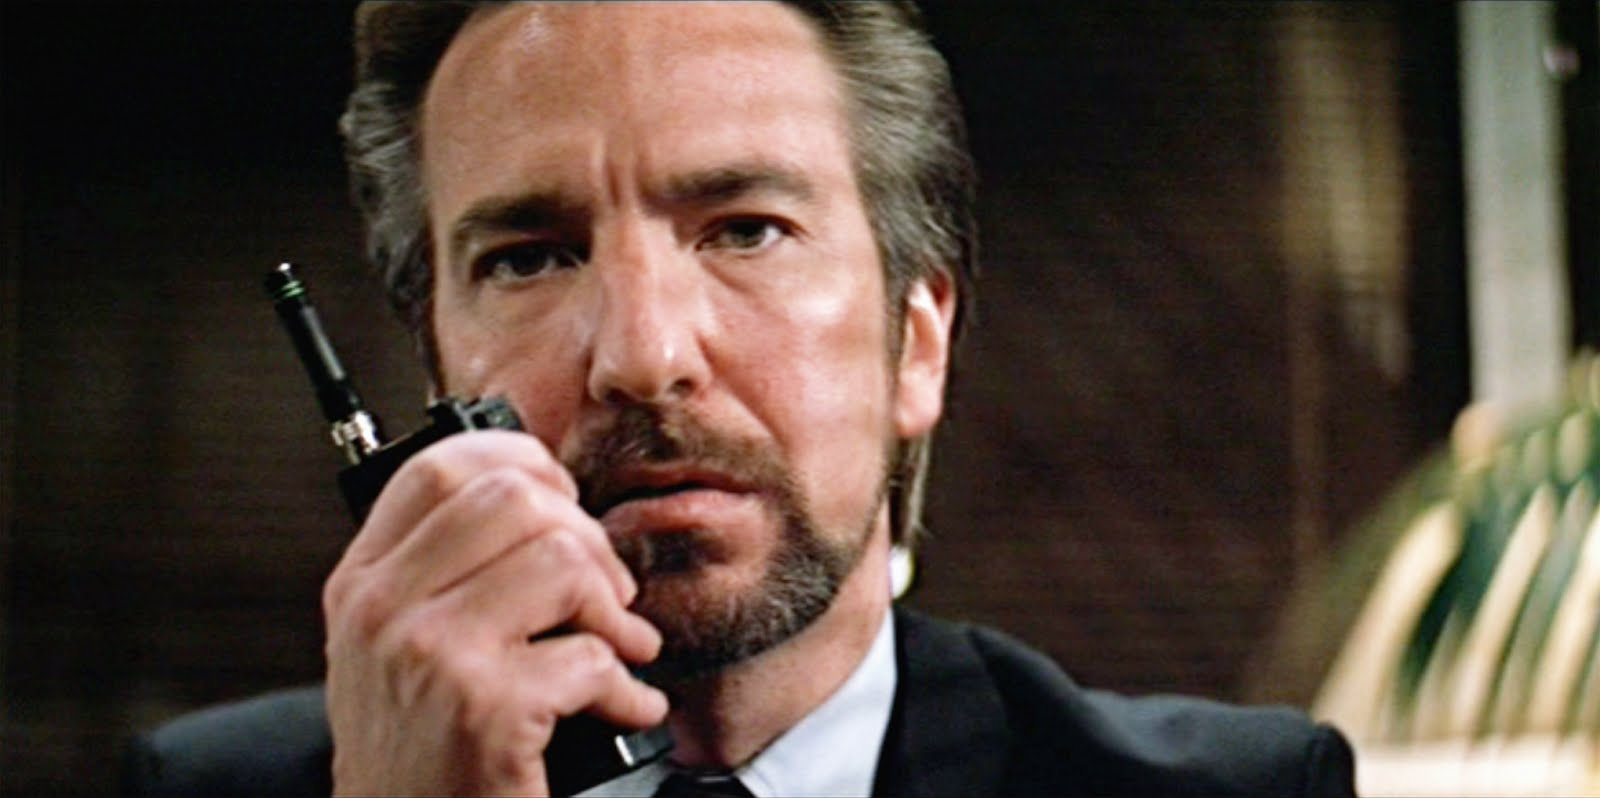 'I do take my work seriously and the way to do that is not to take yourself too seriously.' – Alan Rickman 1946 – 2016